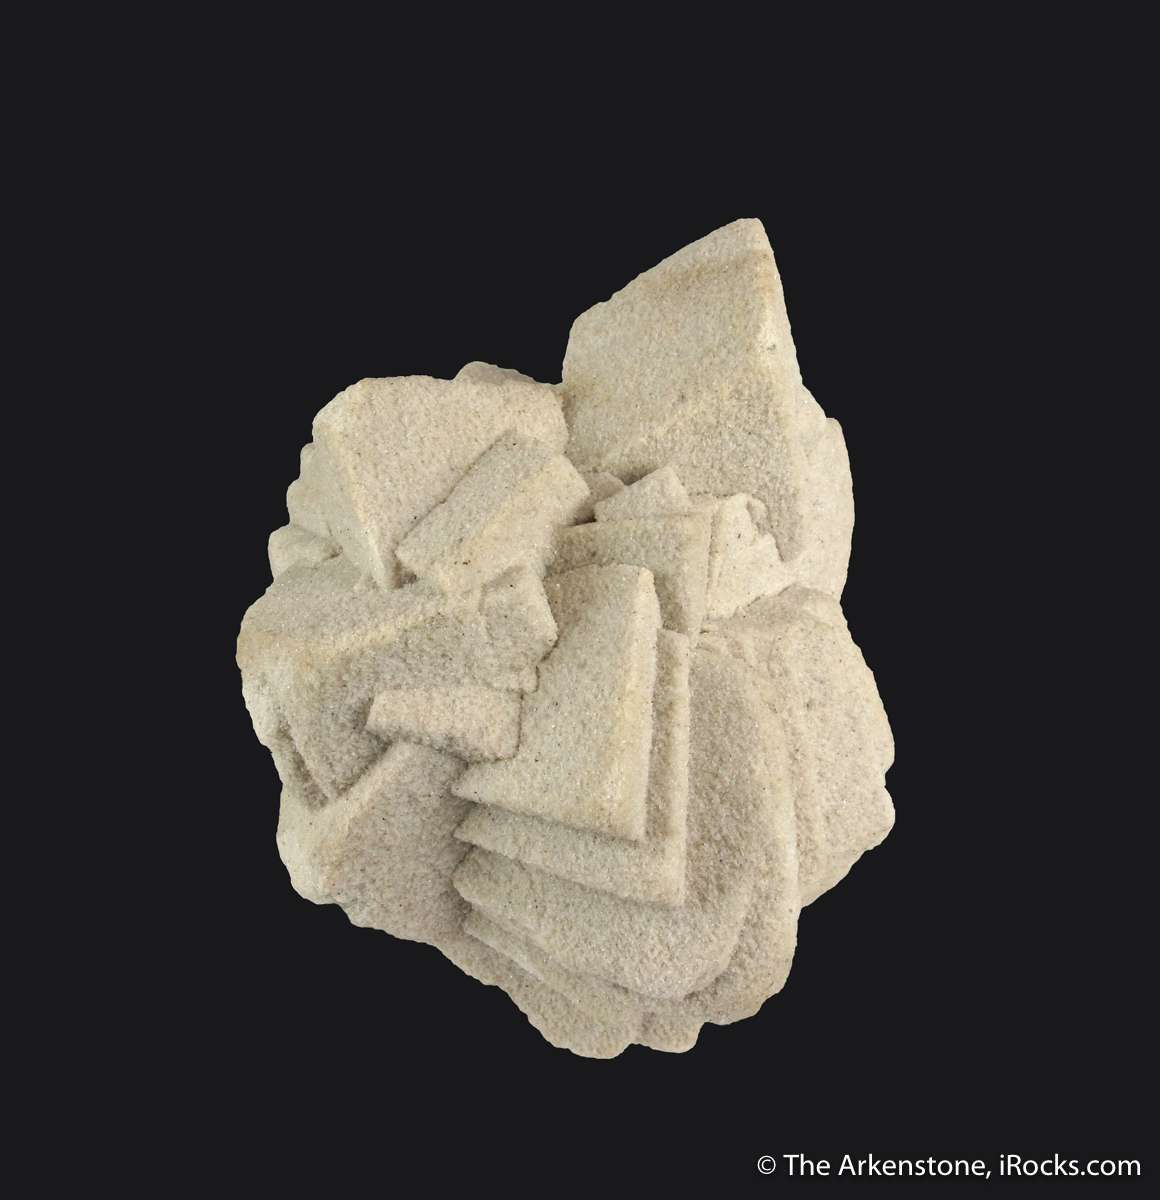 Fontainebleau France noted locality amazingly sculptural specimens